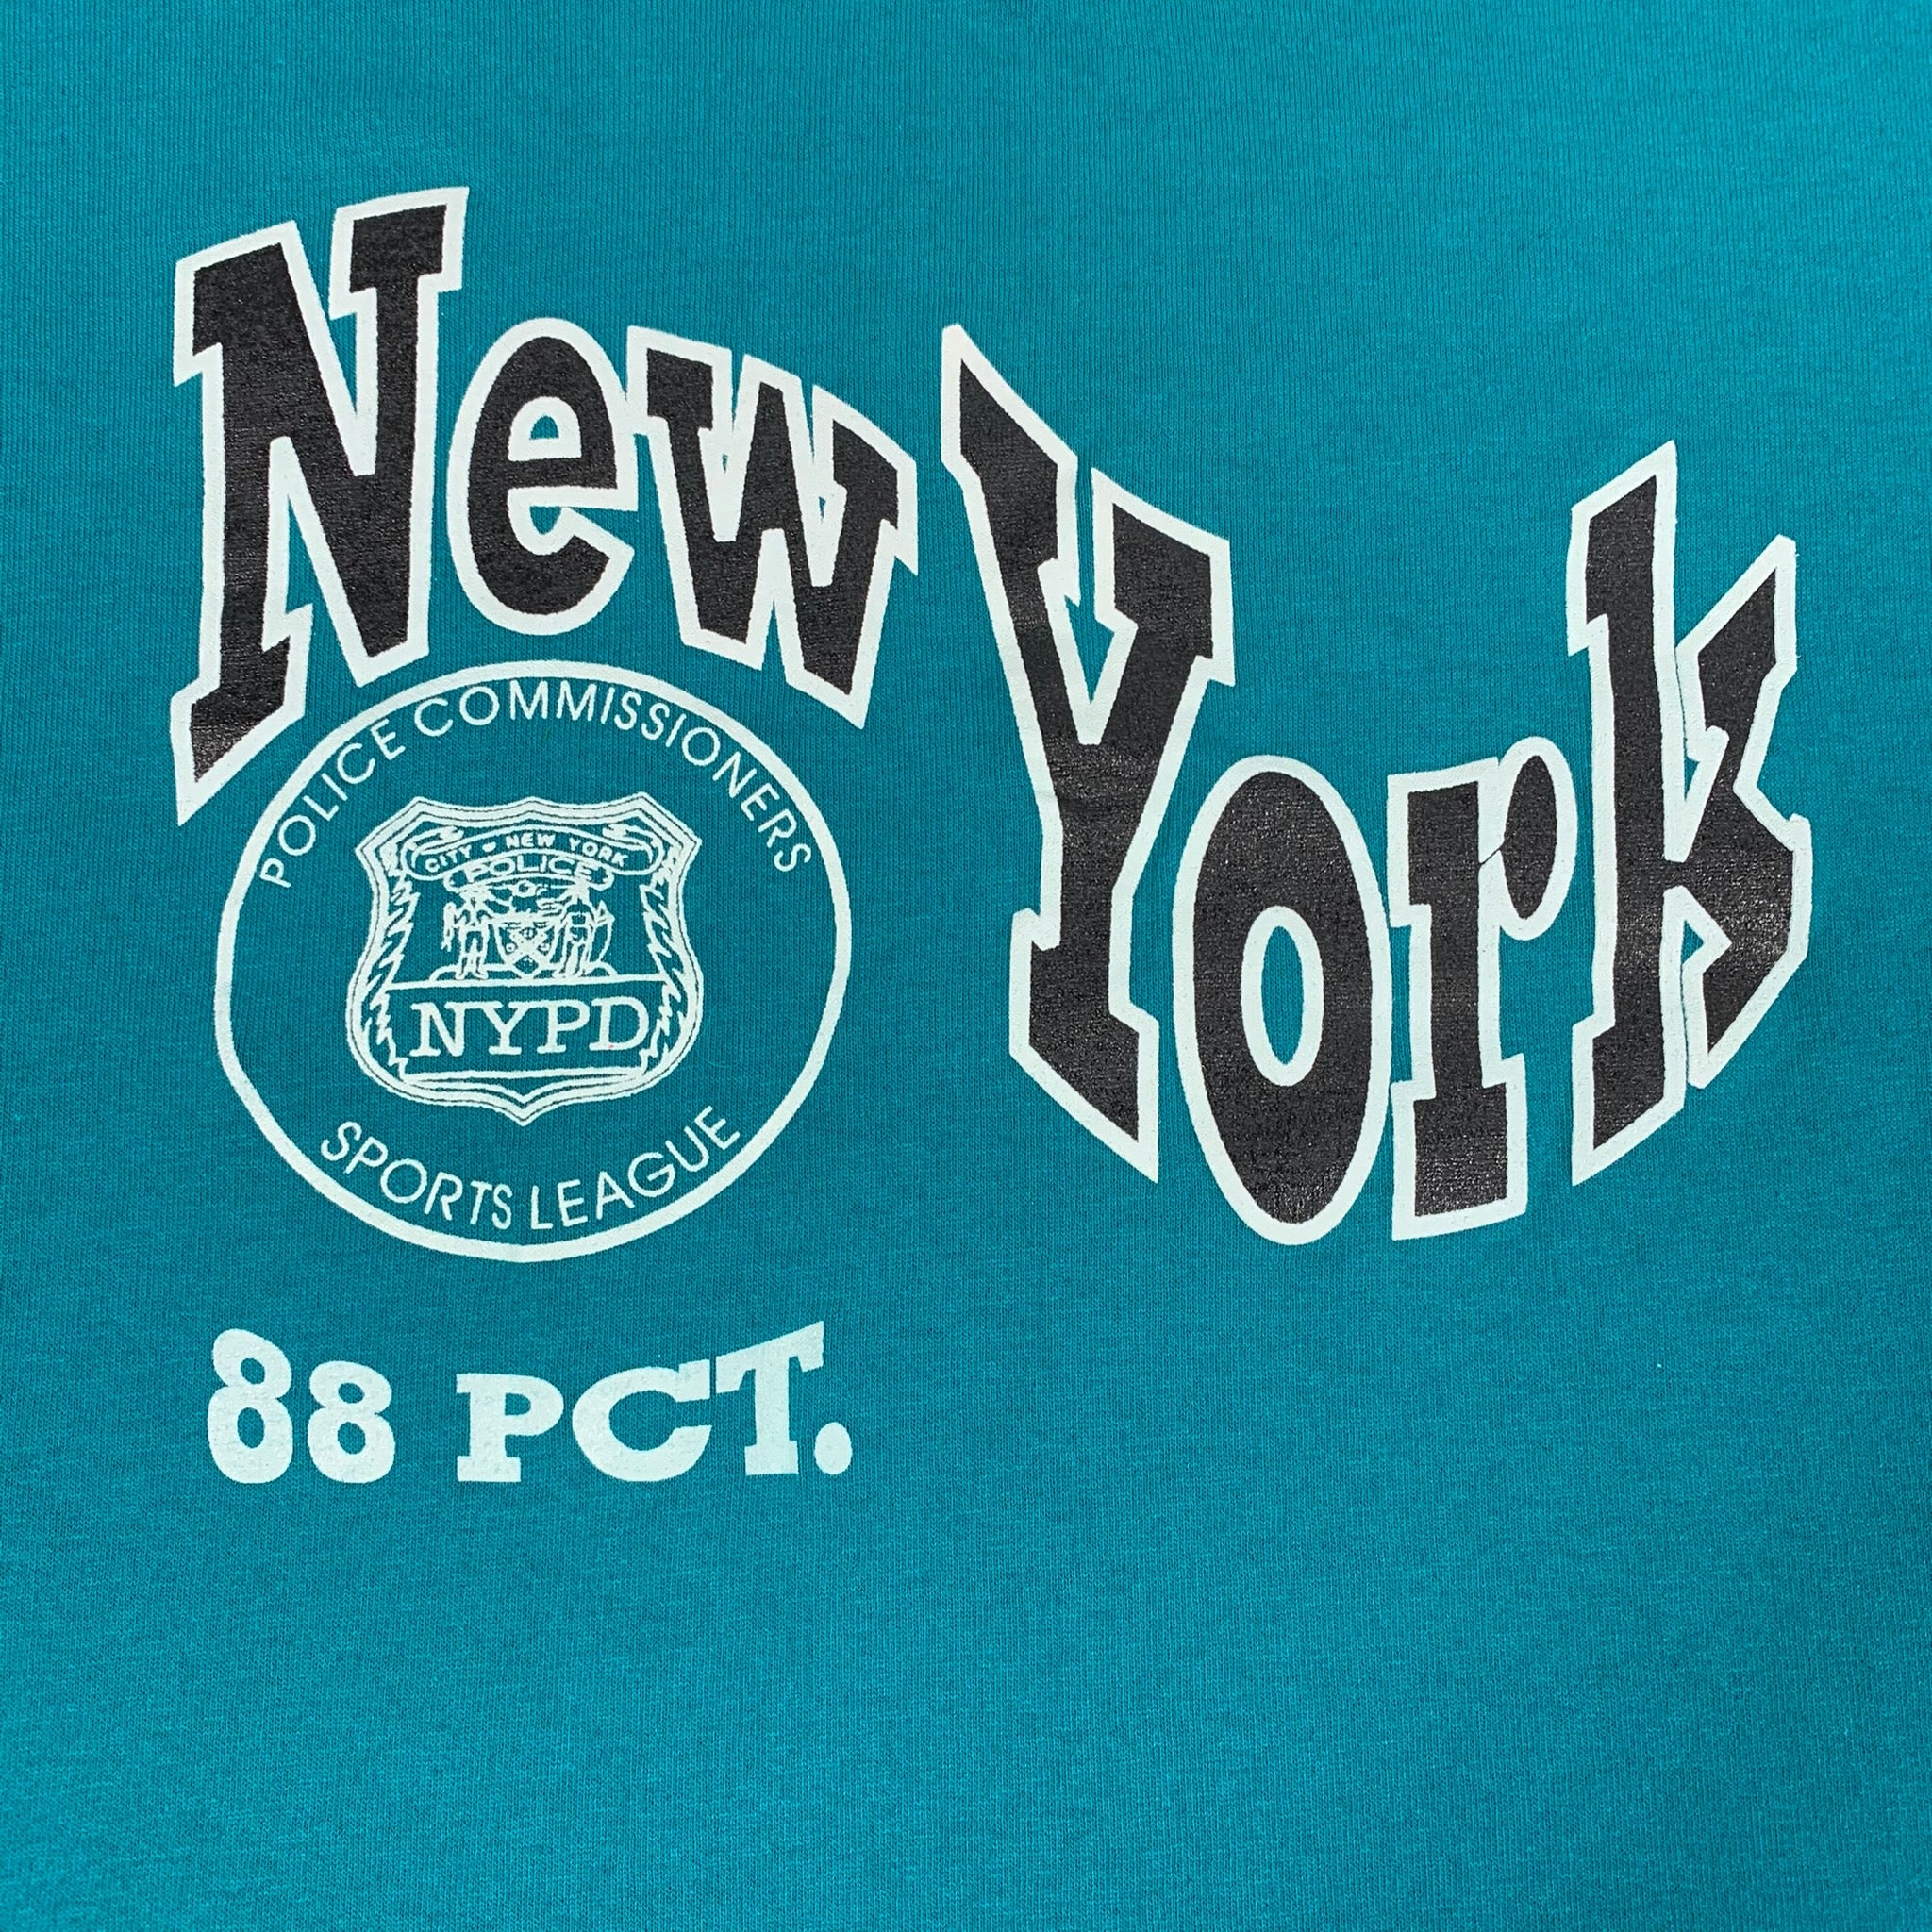 New York Police Commissioners Sports League 88 Pct BK T-Shirt